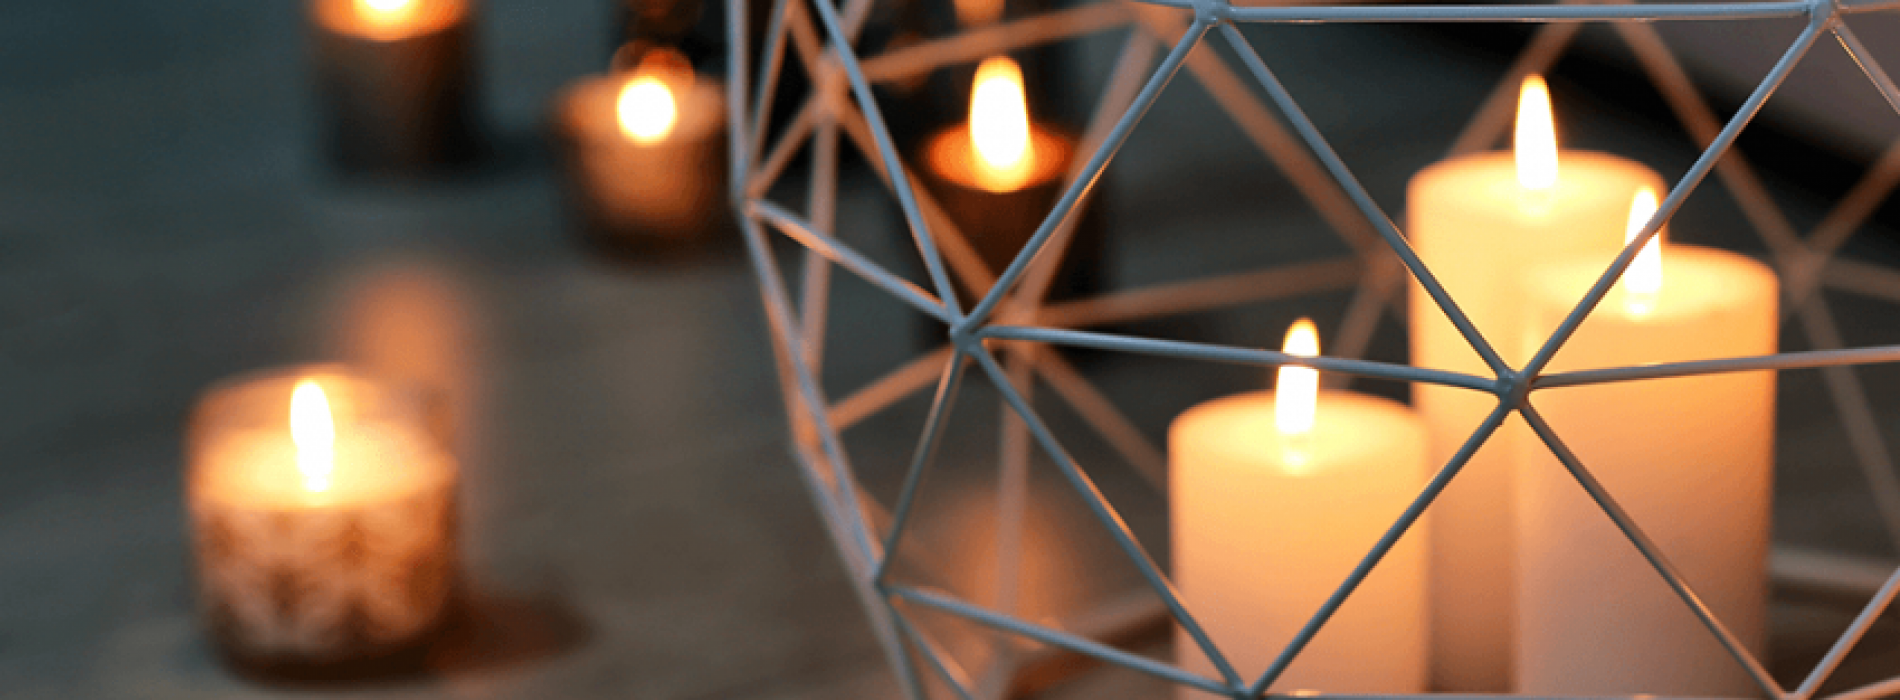 Wholesale Candle Supplier- Top 3 Considerable Things You Need To Know